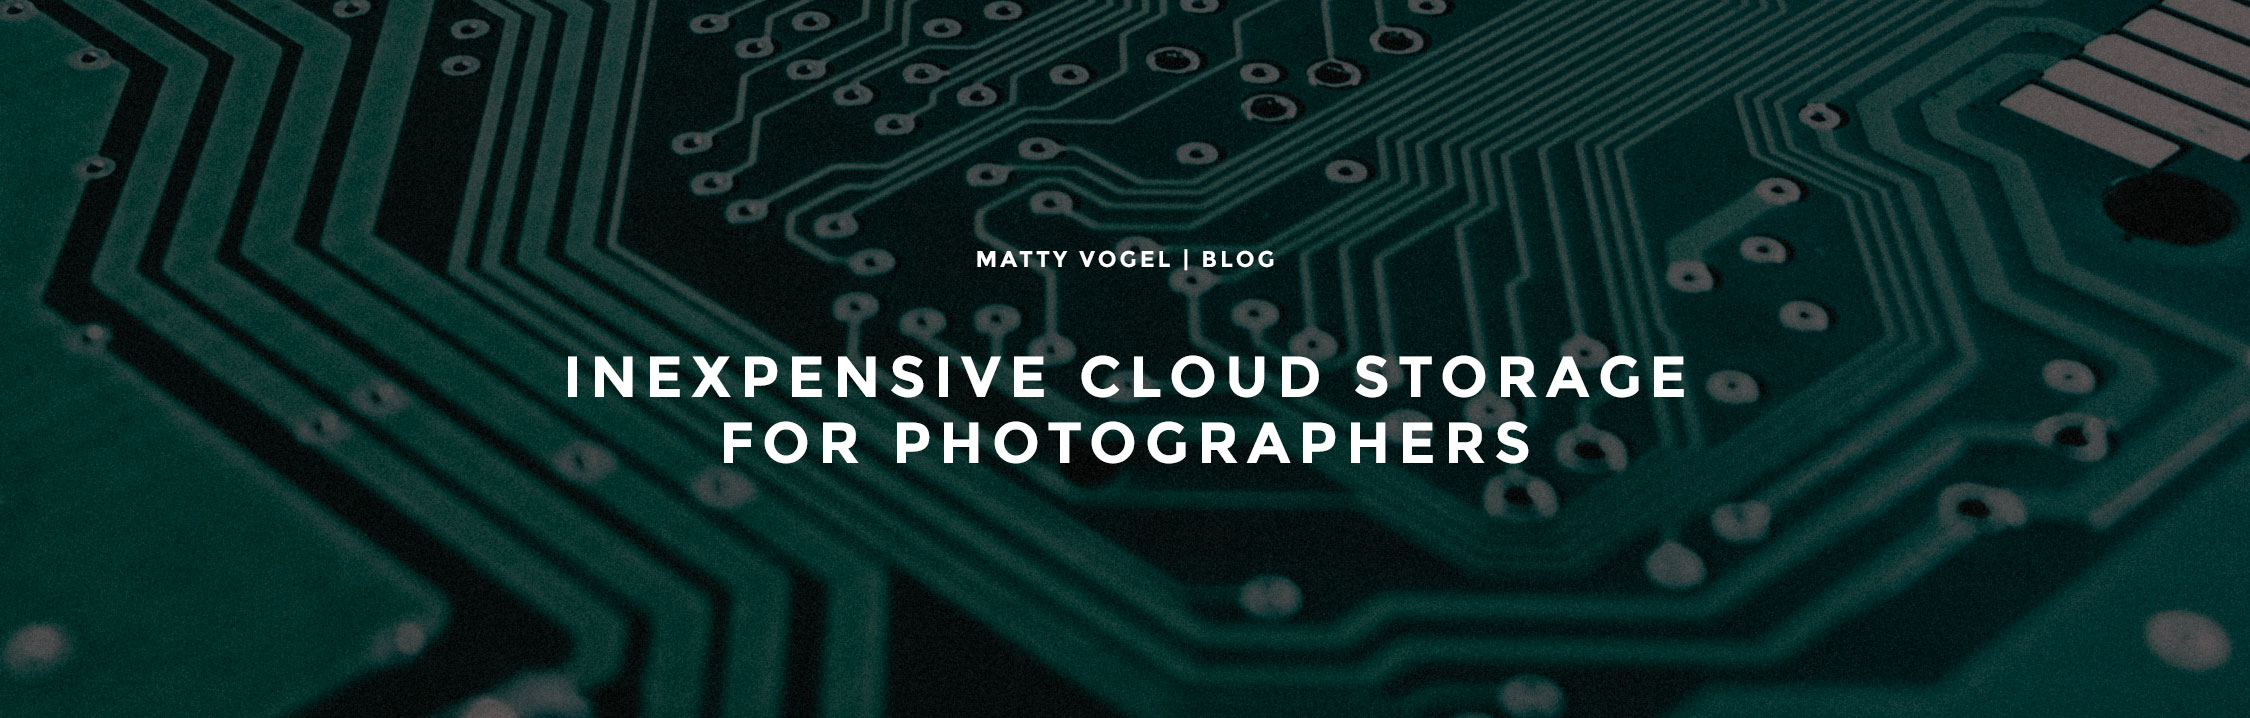 Cloud Storage for Photographers | Amazon Drive and odrive | Matty Vogel